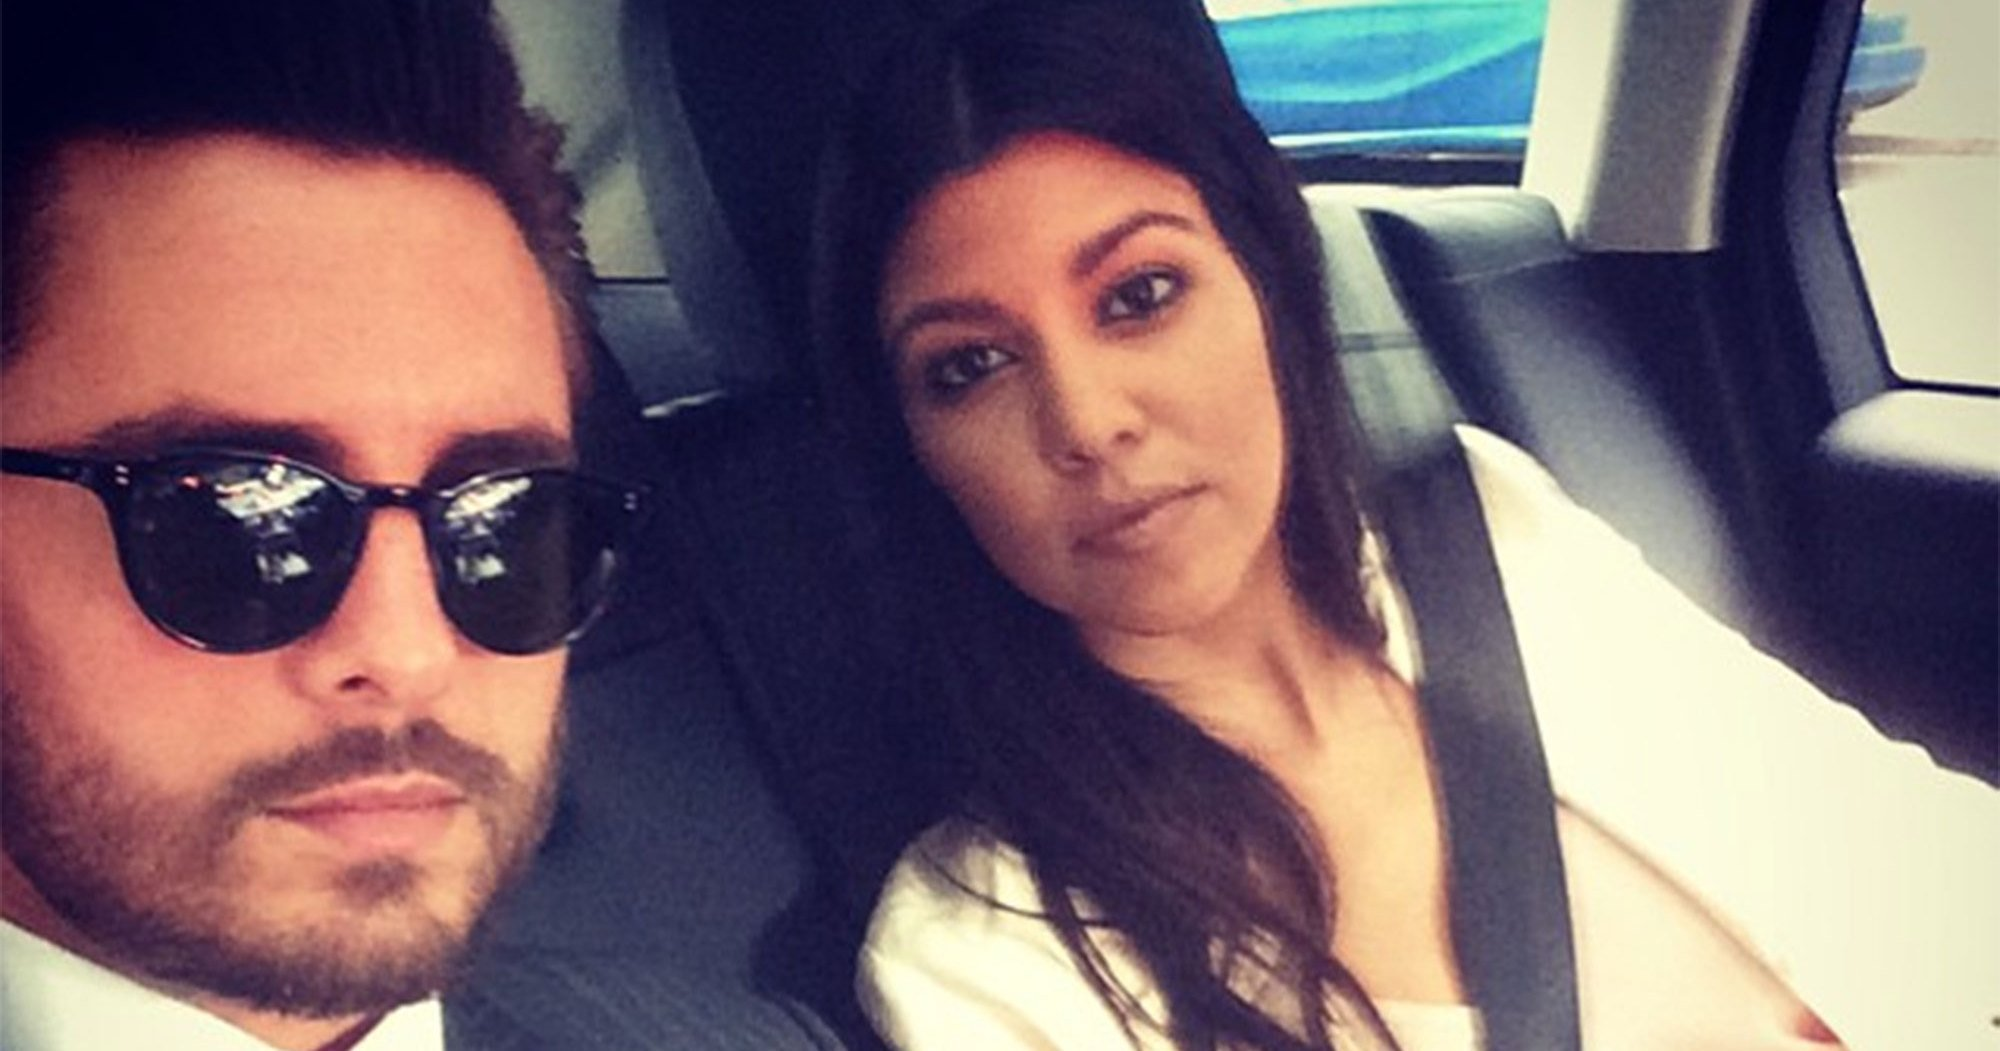 Kourtney Kardashian and Scott Disick: A Timeline of Their Relationship